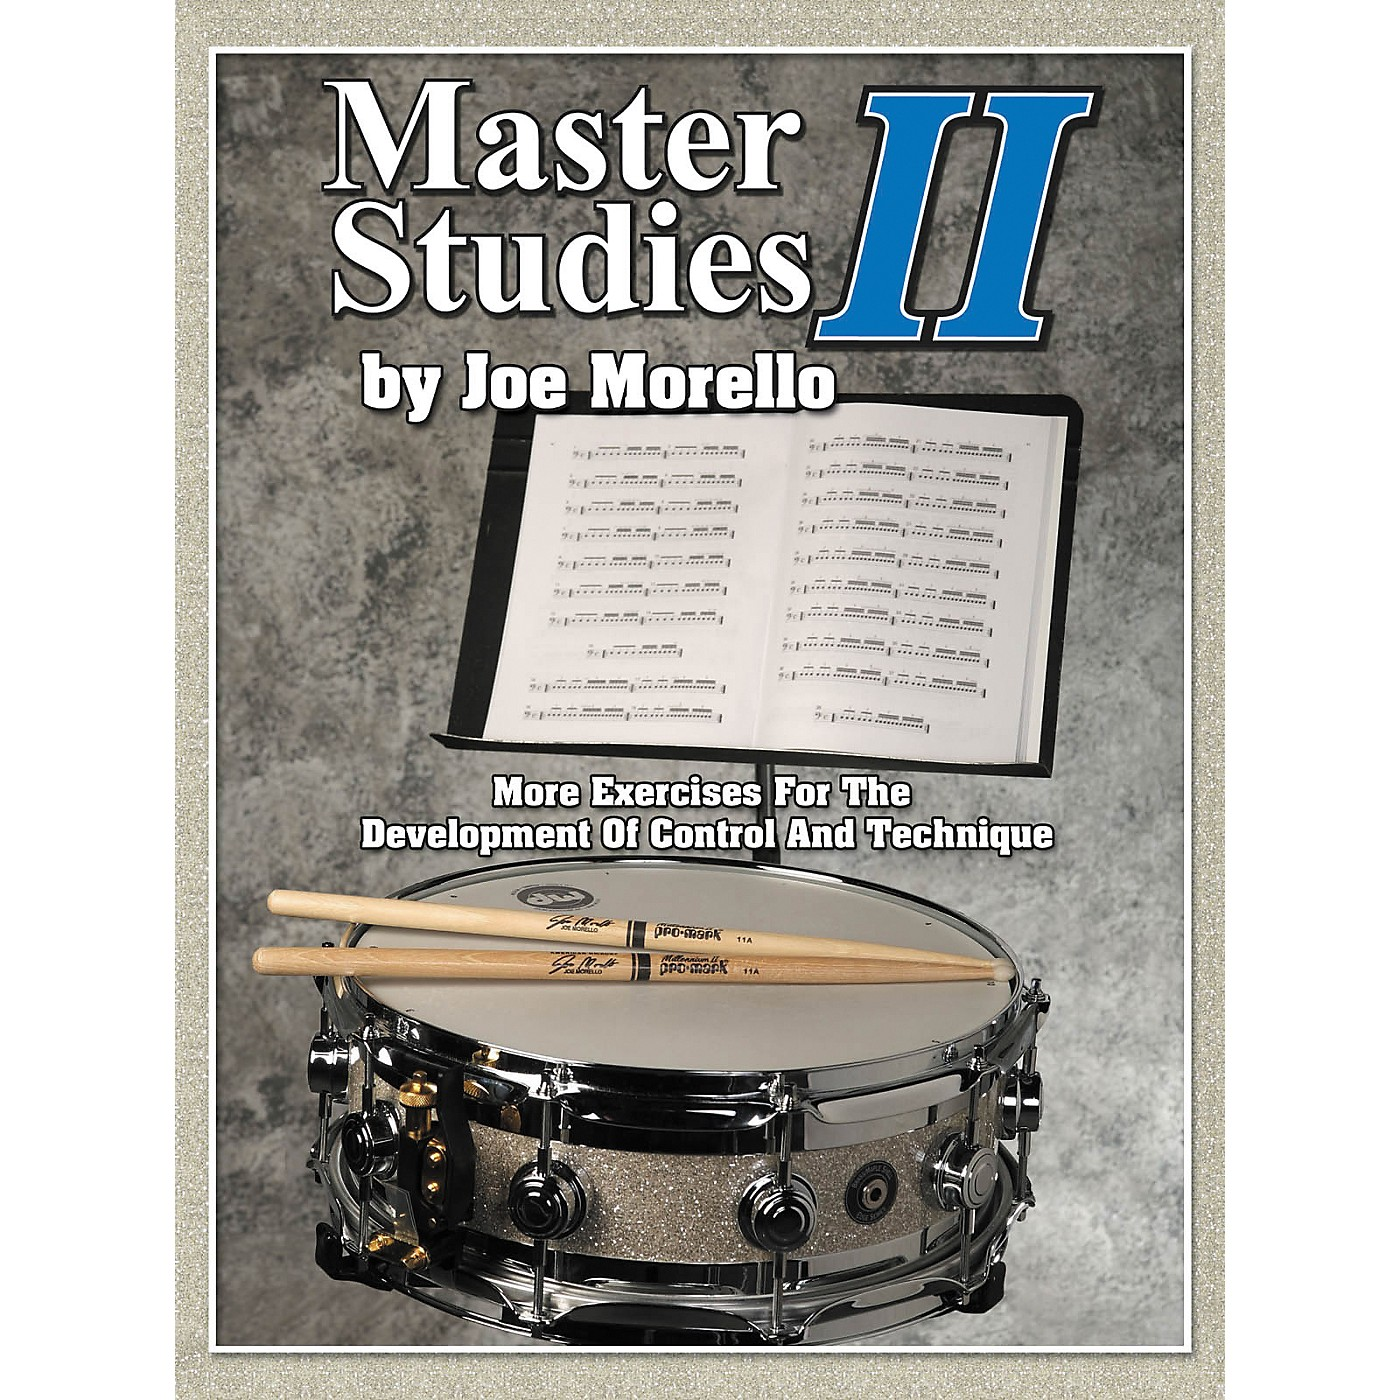 Modern Drummer Master Studies 2 - More Exercises For The Development Of Control And Technique Book thumbnail